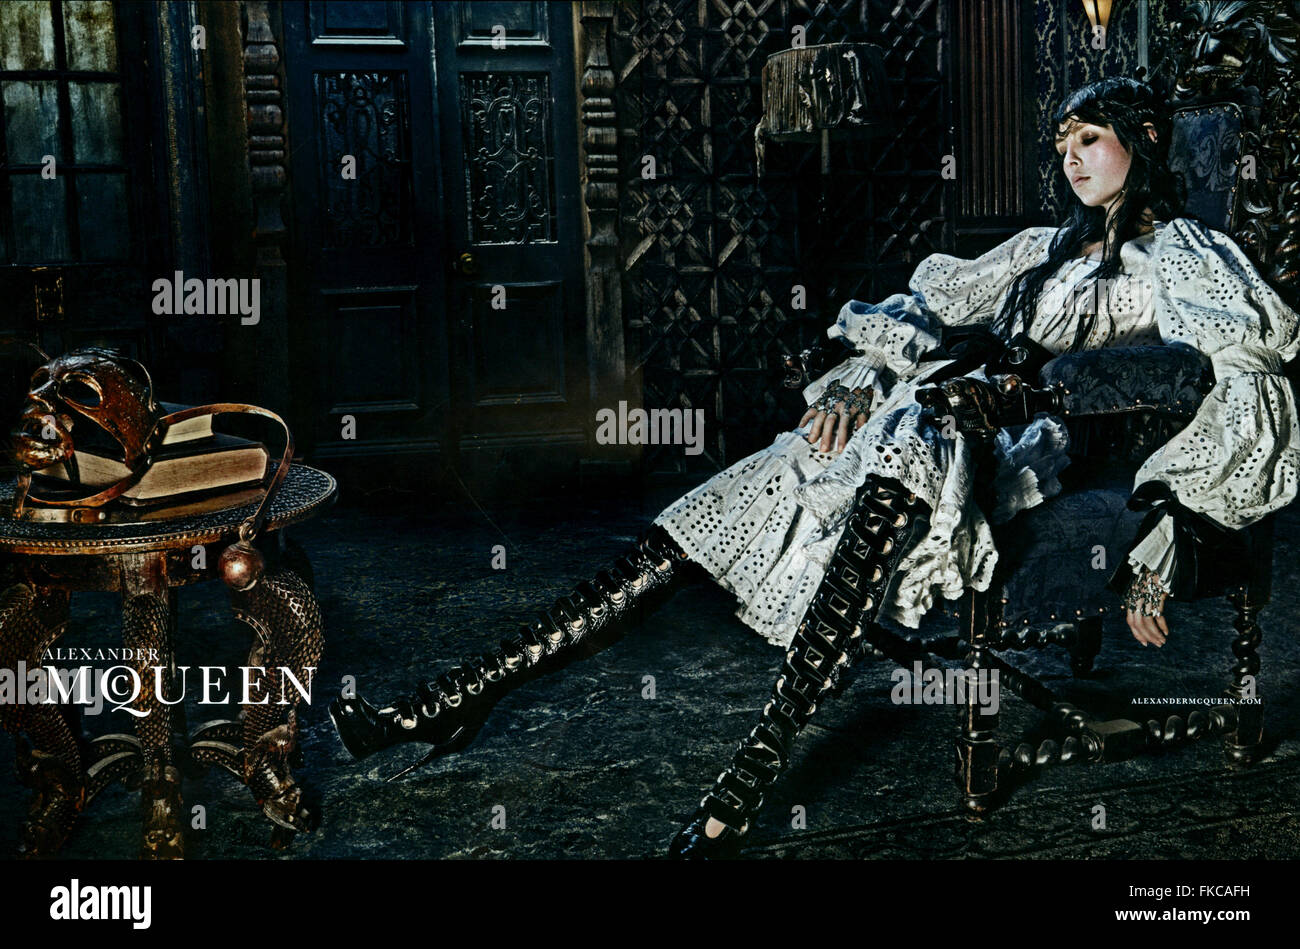 2010s UK Alexander McQueen Magazine Advert - Stock Image